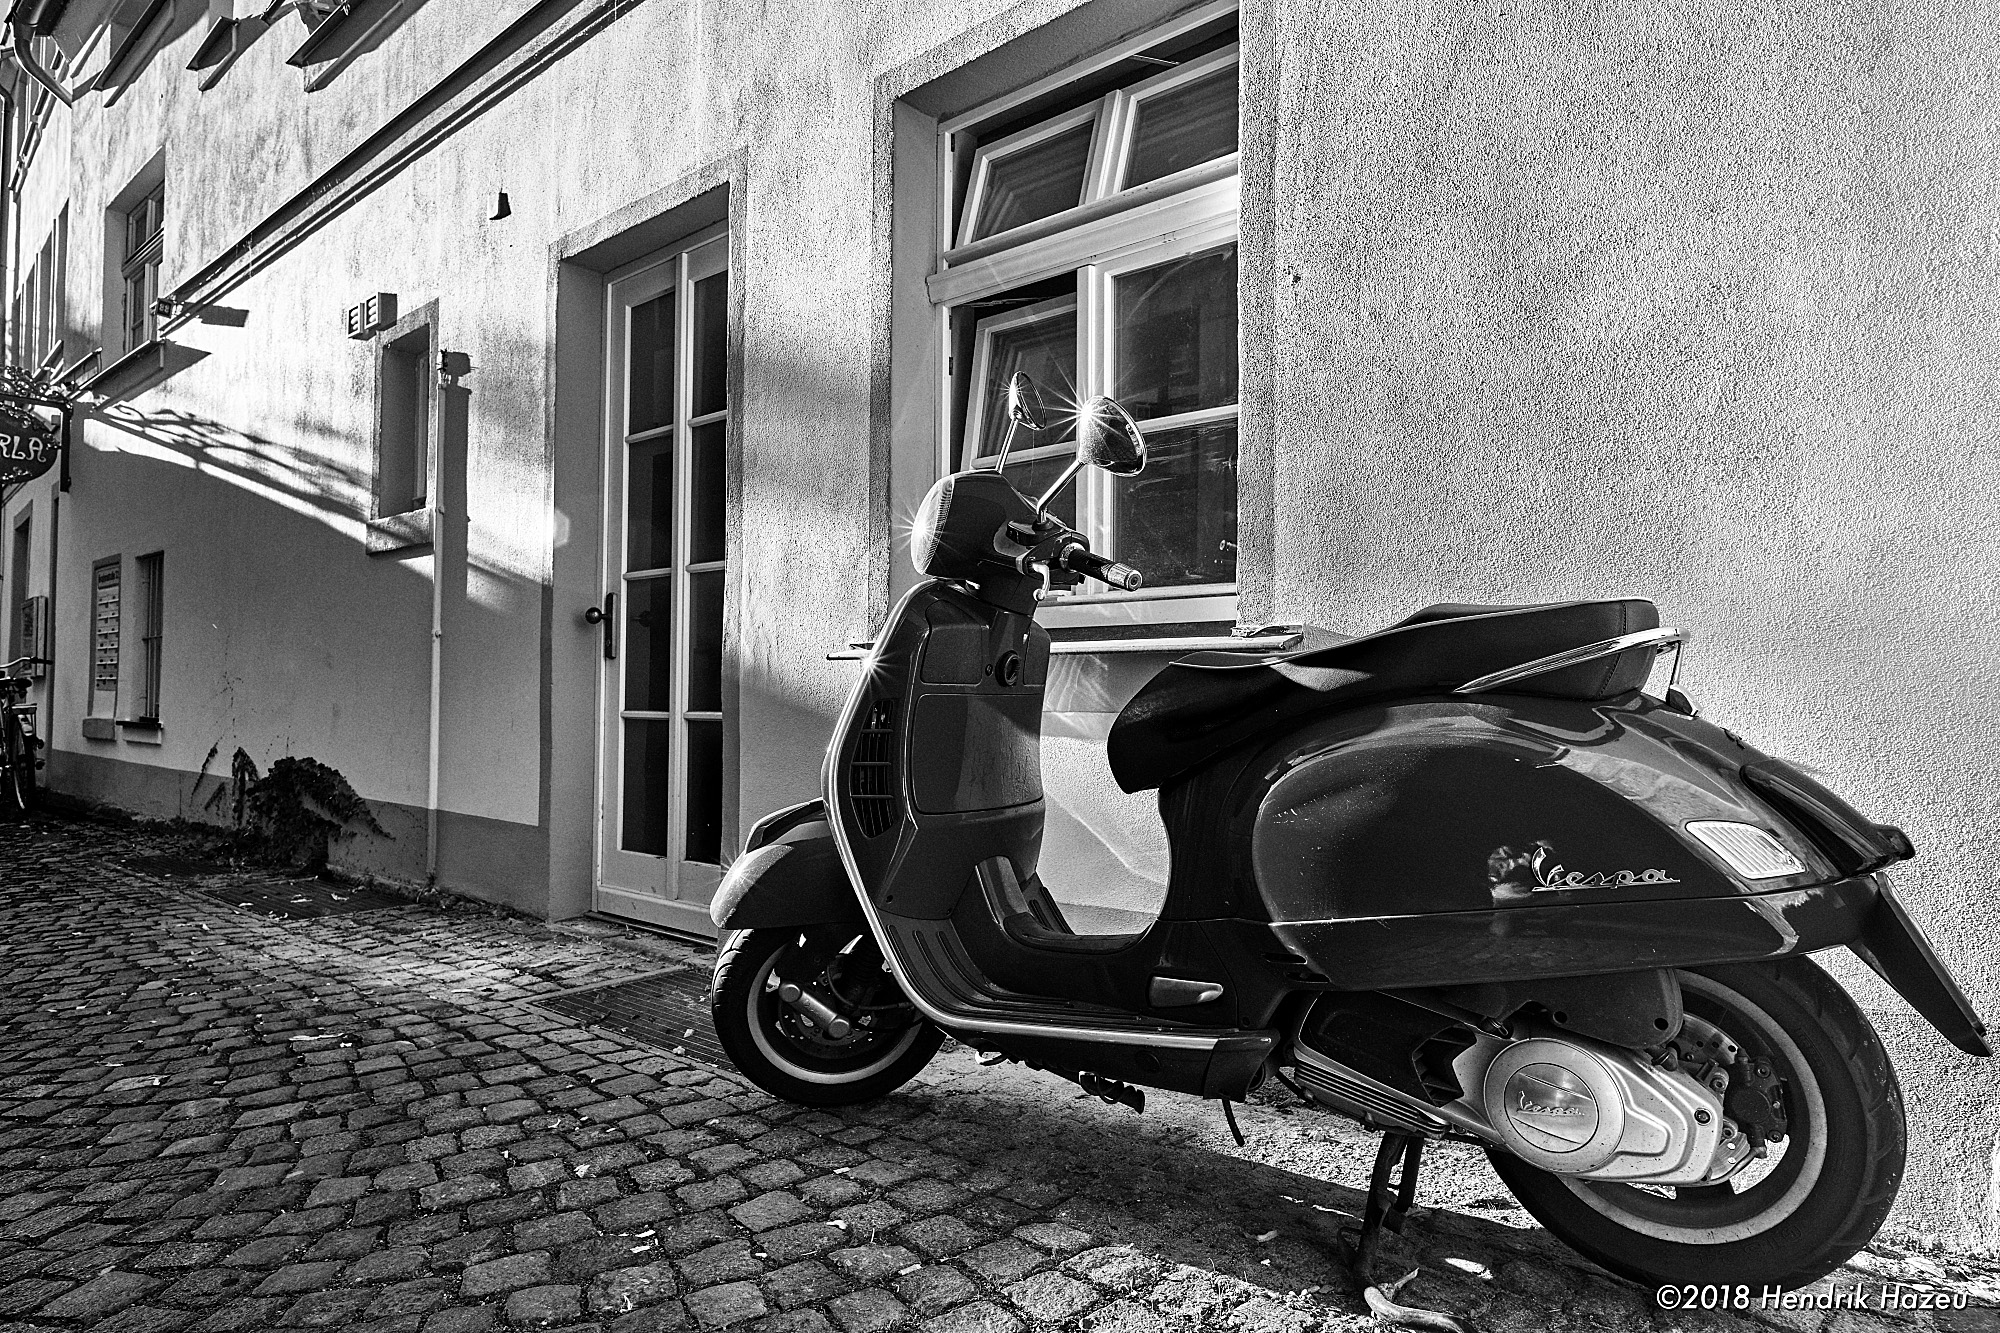 Parking red Vespa, captured with Nikkor AF-S 20mm f/1.8G @f/8, 1/40sec, ISO 80